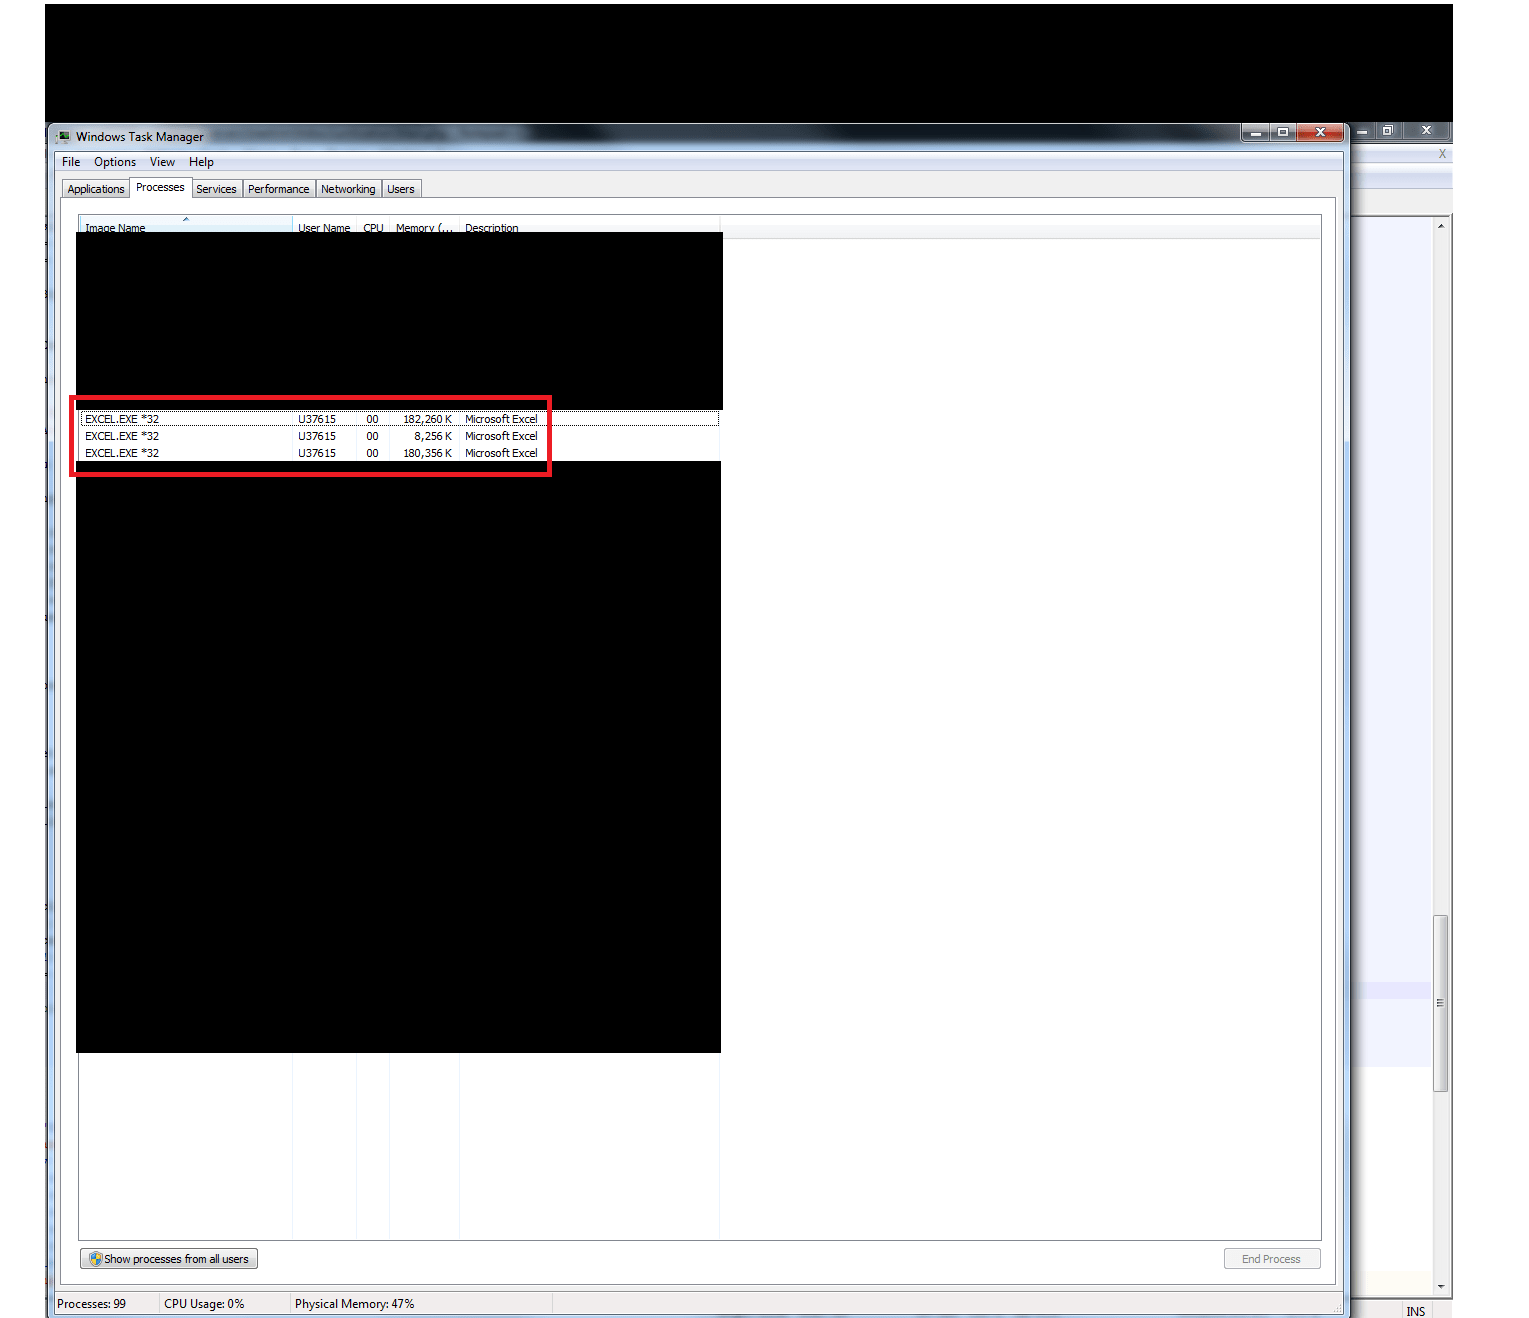 Activexobject Excel Leaves Excel Exe 32 In Procces